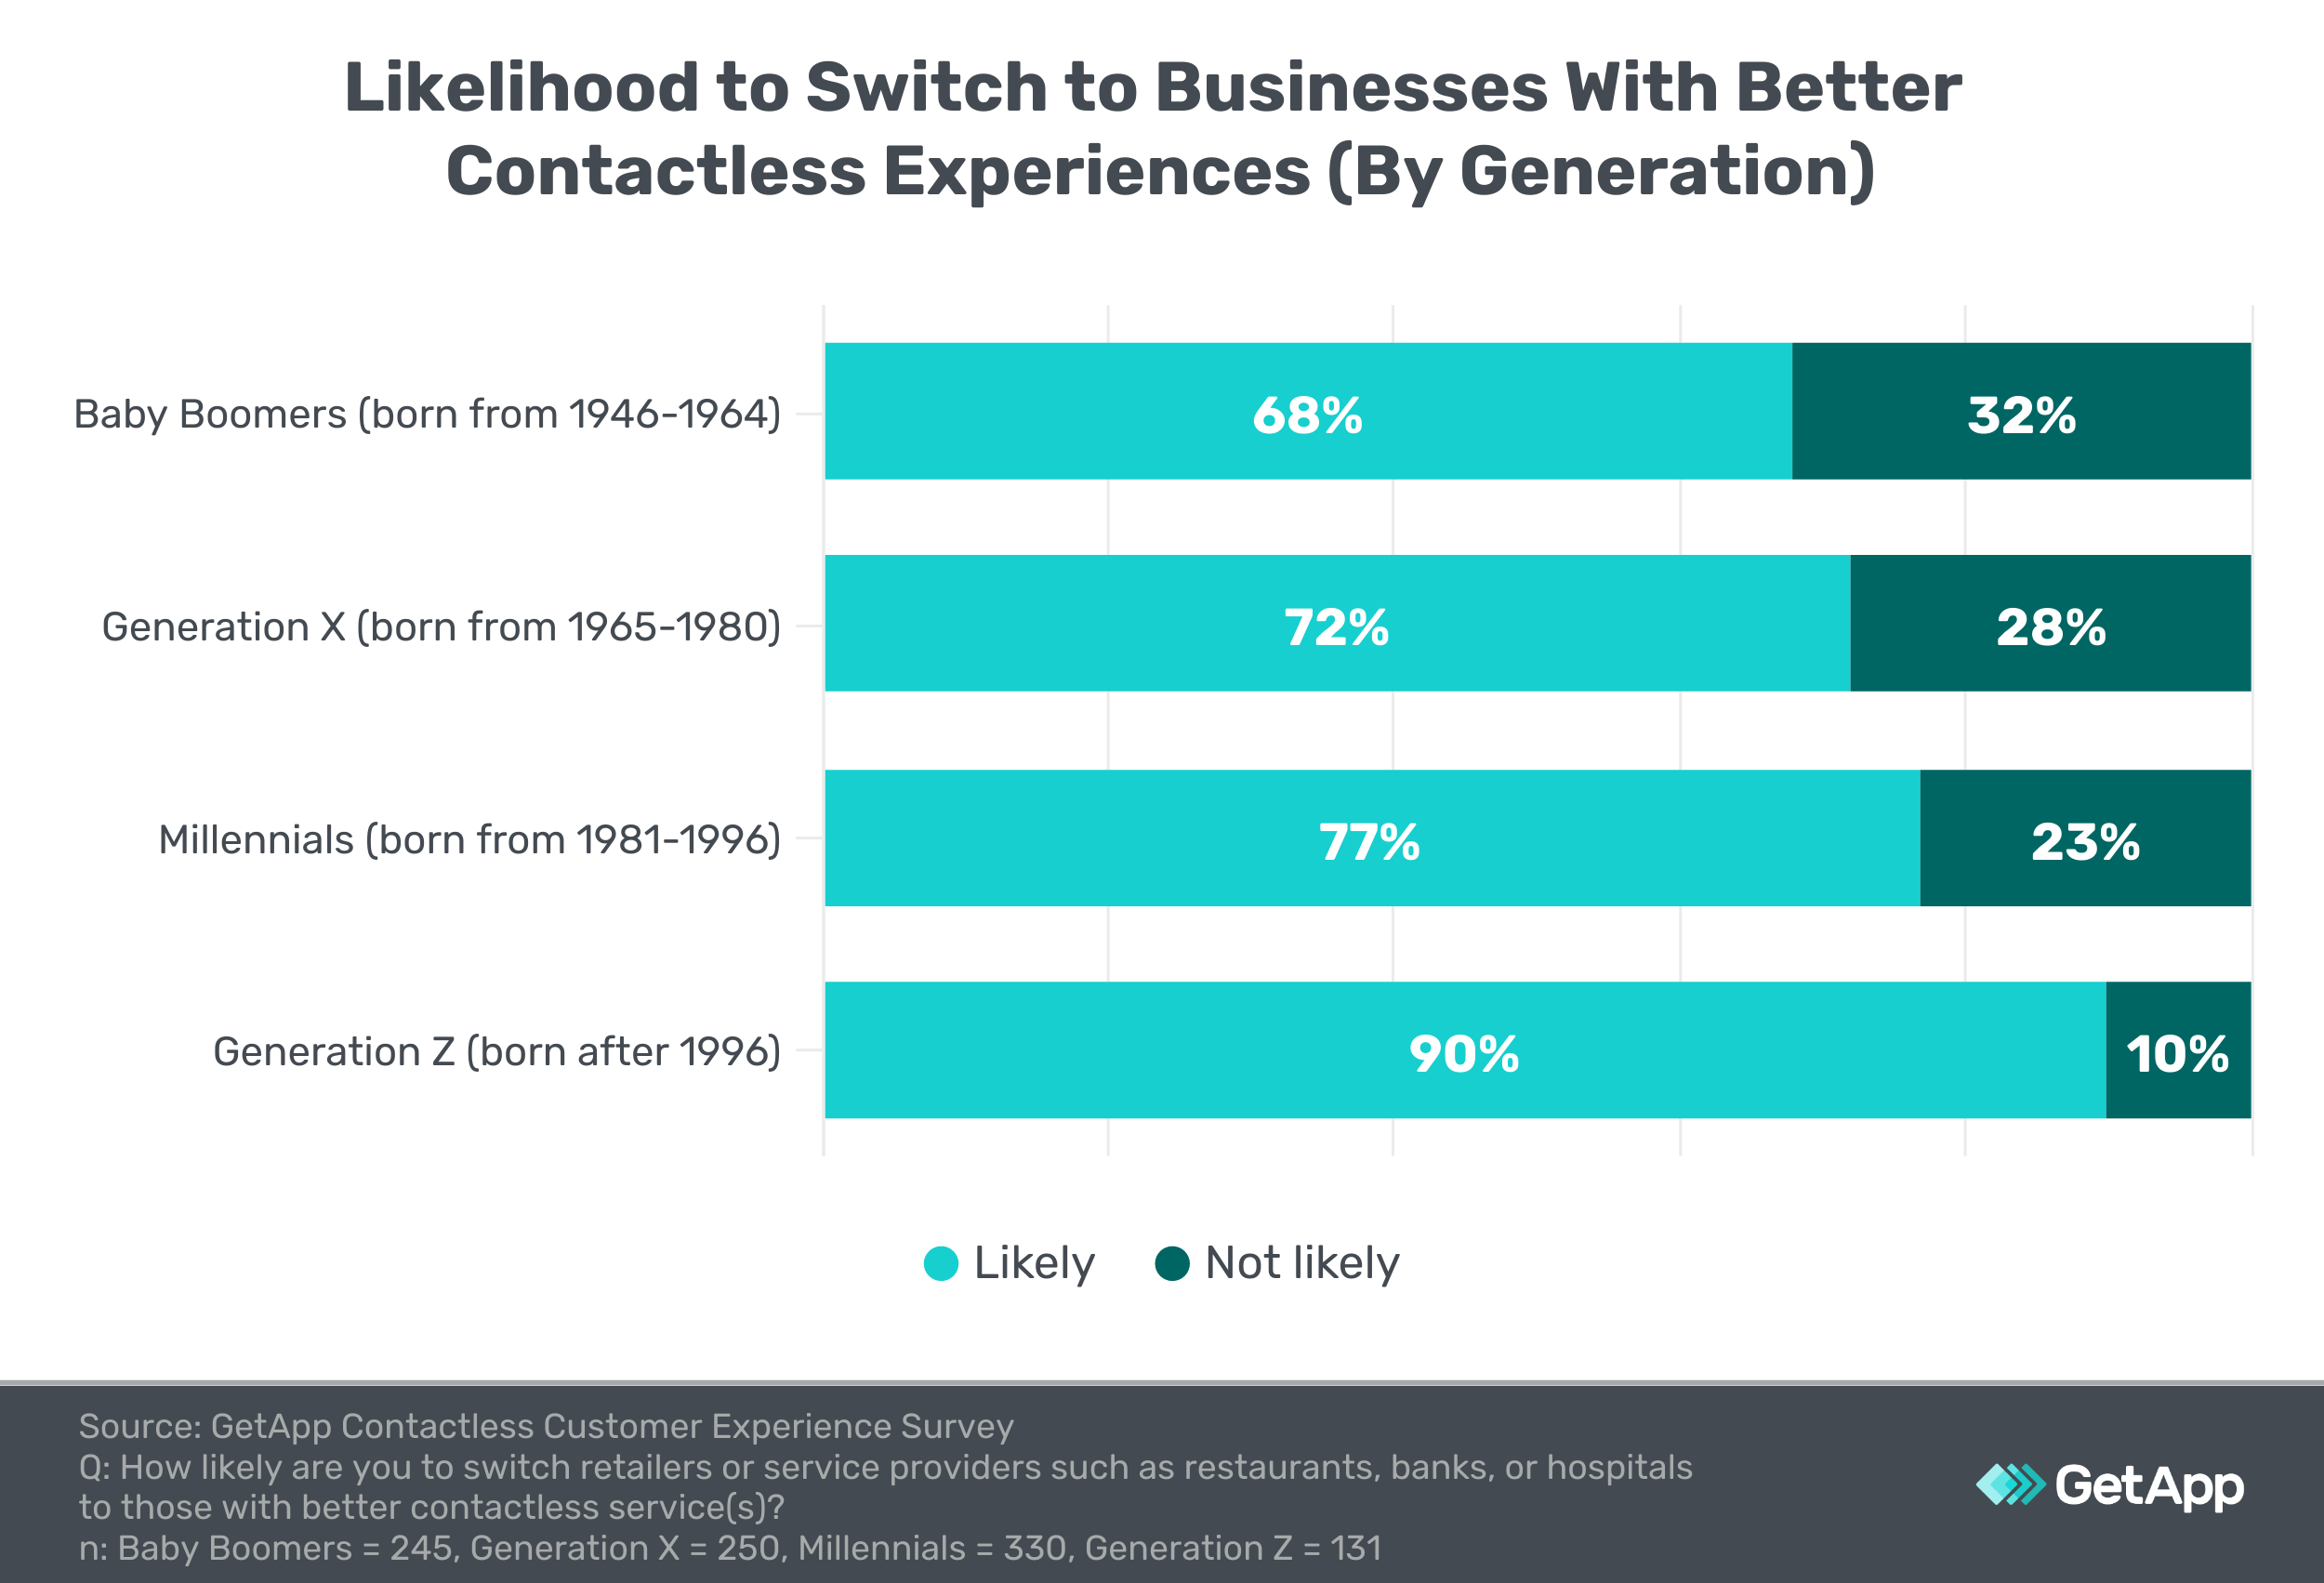 bar graph showing the likelihood of switching businesses to one with better contactless experiences, by generation